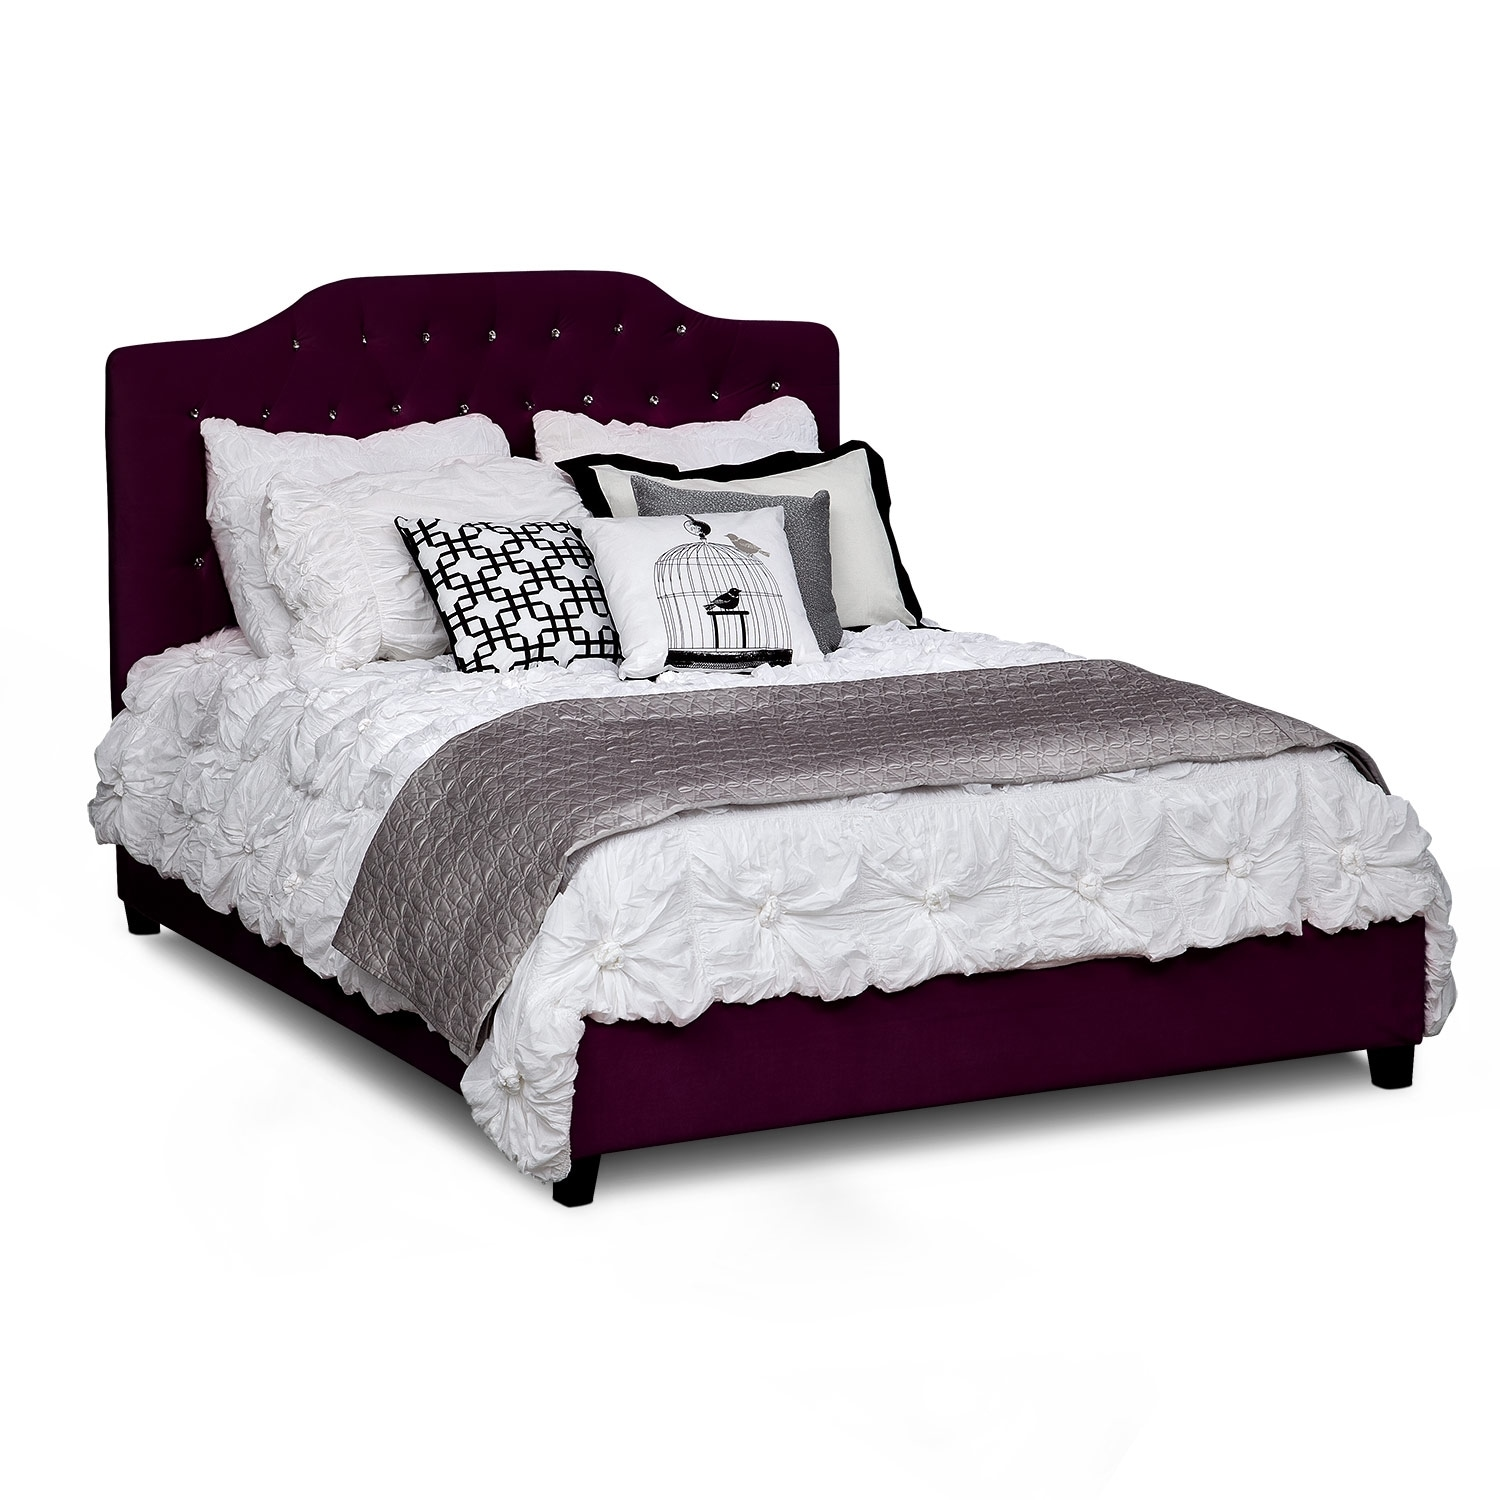 Bedroom Furniture - Valerie Queen Bed - Purple